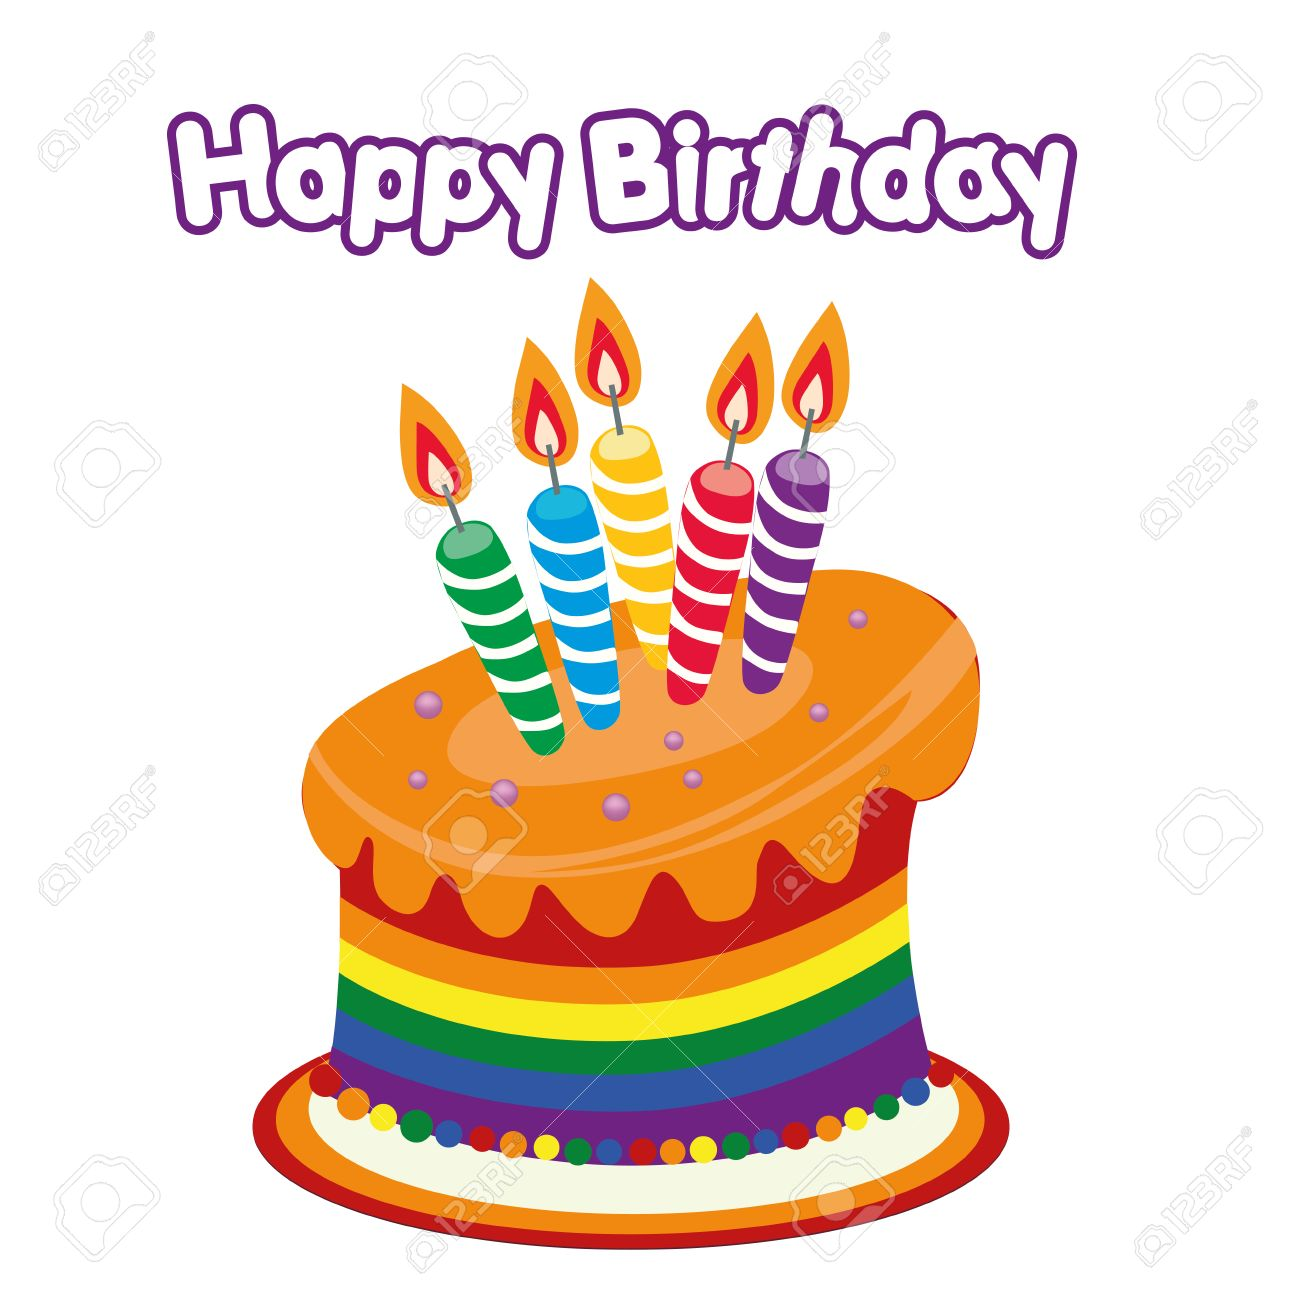 A Colored Happy Birthday Cake With Some Text Stock Vector